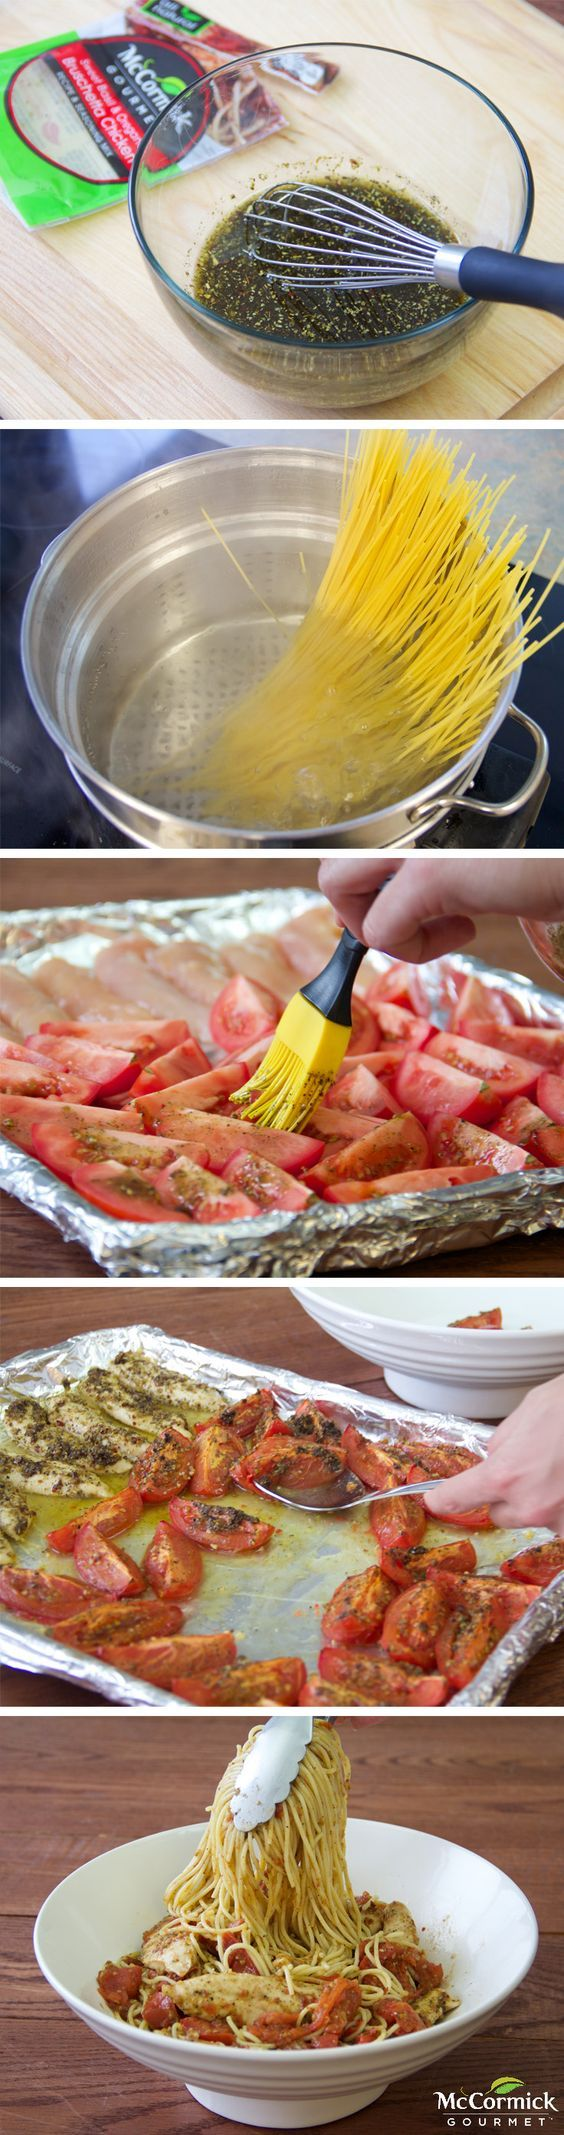 Roast plum tomatoes to bring out their sweetness. Add chicken tenders to the baking pan and you'll have a flavorful pasta dish.: